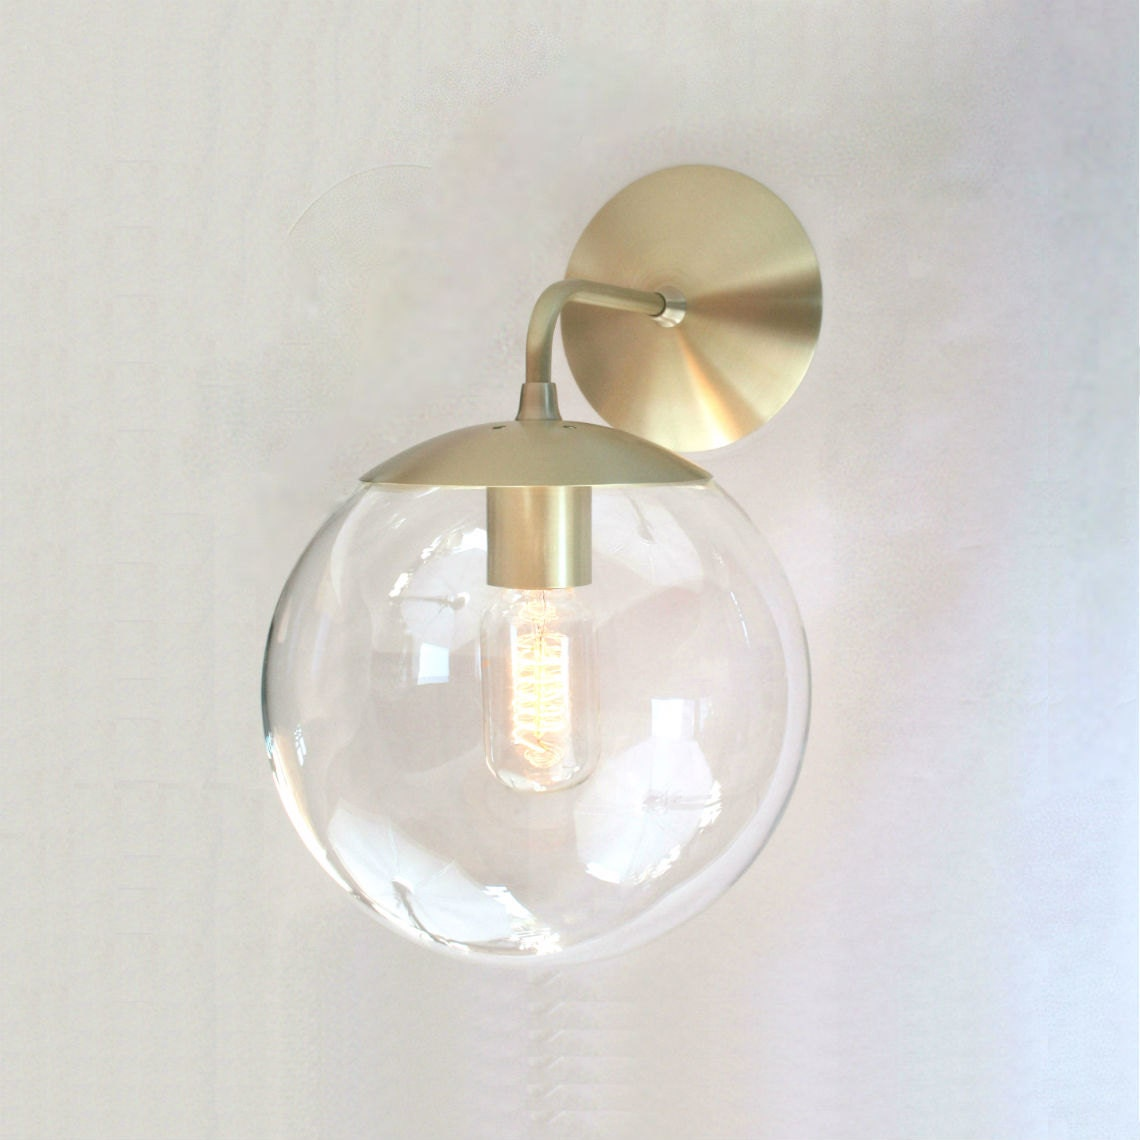 Mid Century Modern Outdoor Wall Sconces : Mid Century Modern Wall Sconce Light 8 Clear Glass Globe